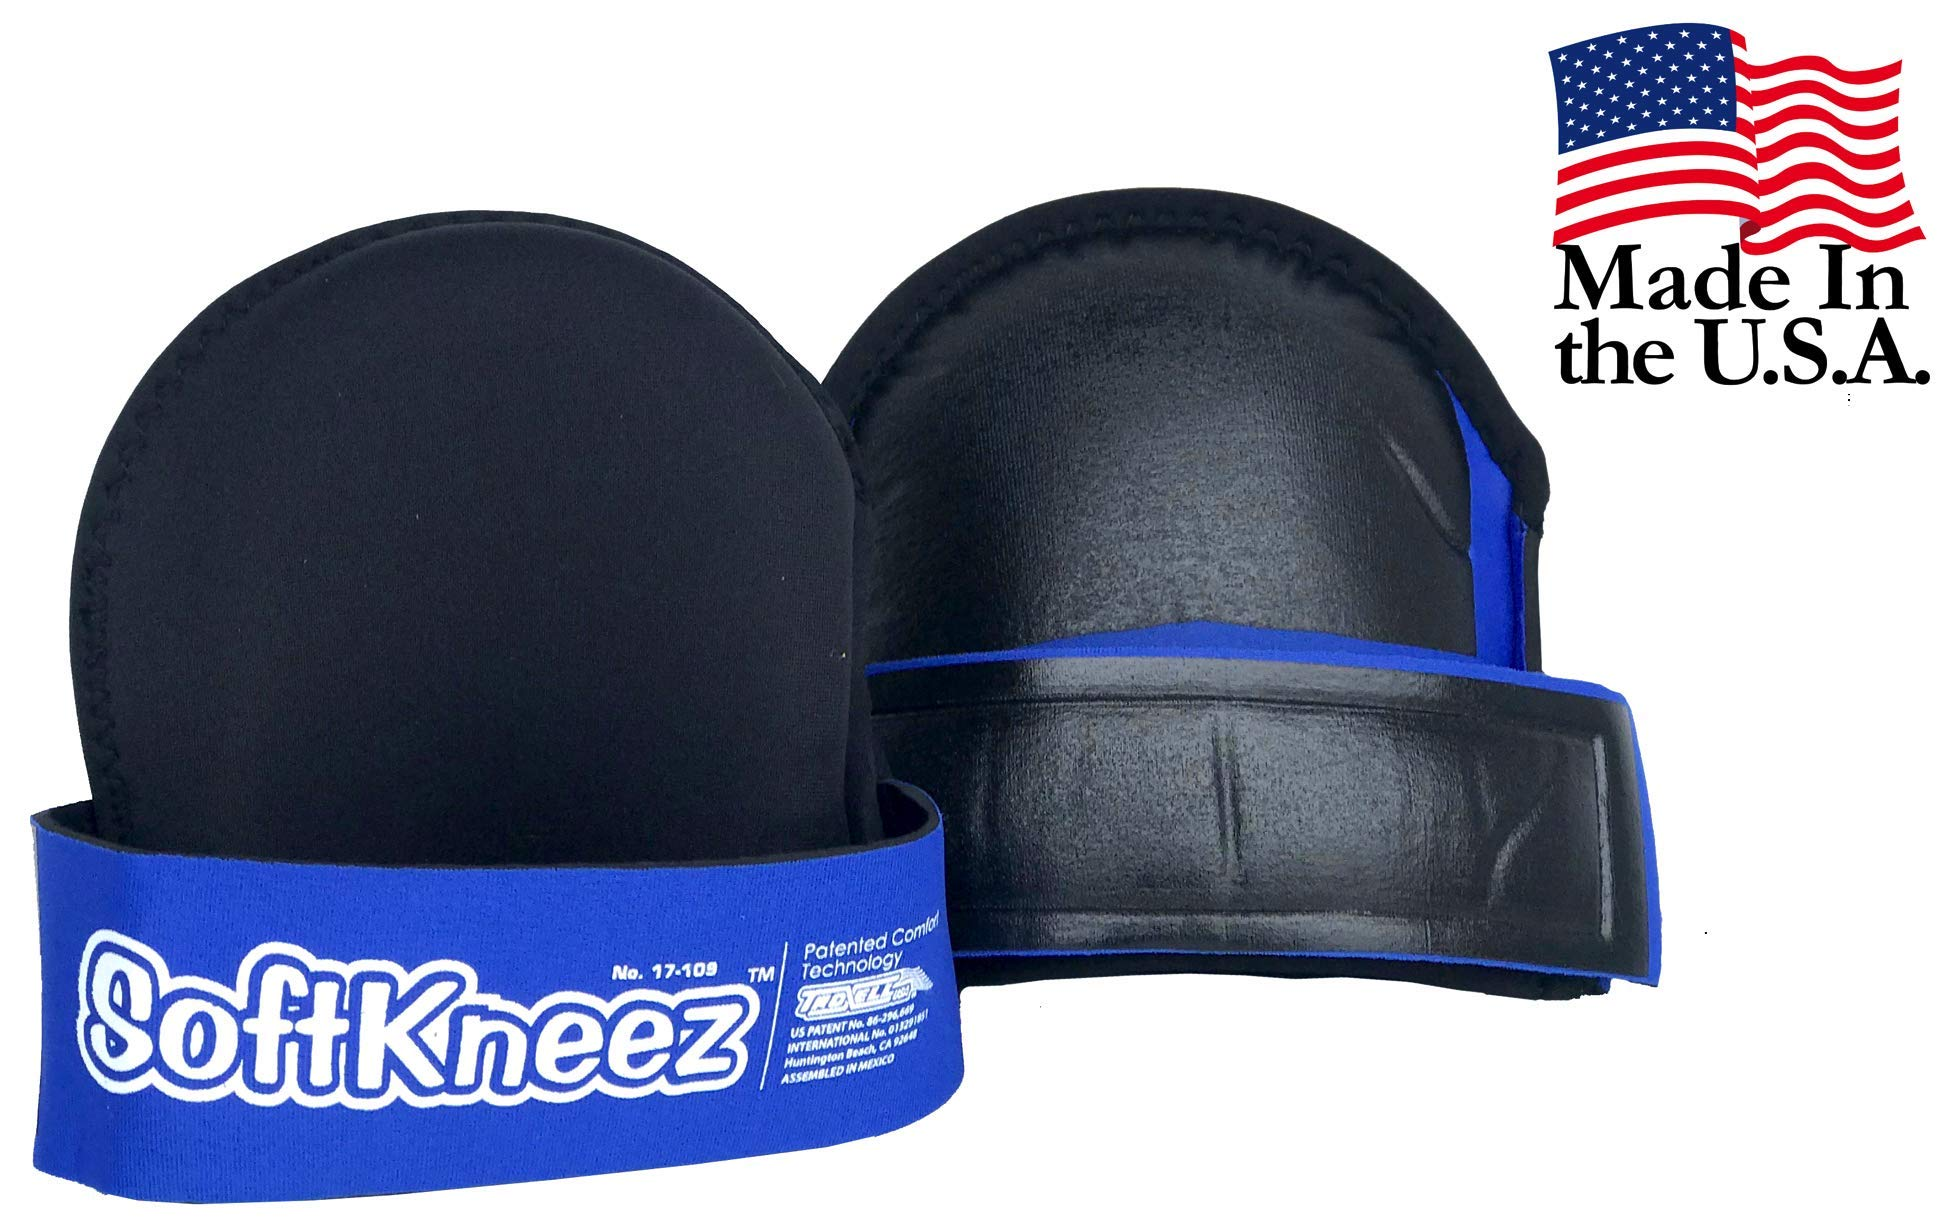 Troxell USA - SuperSoft Kneez Knee Pad (Bagged in Pairs) by TROXELL USA